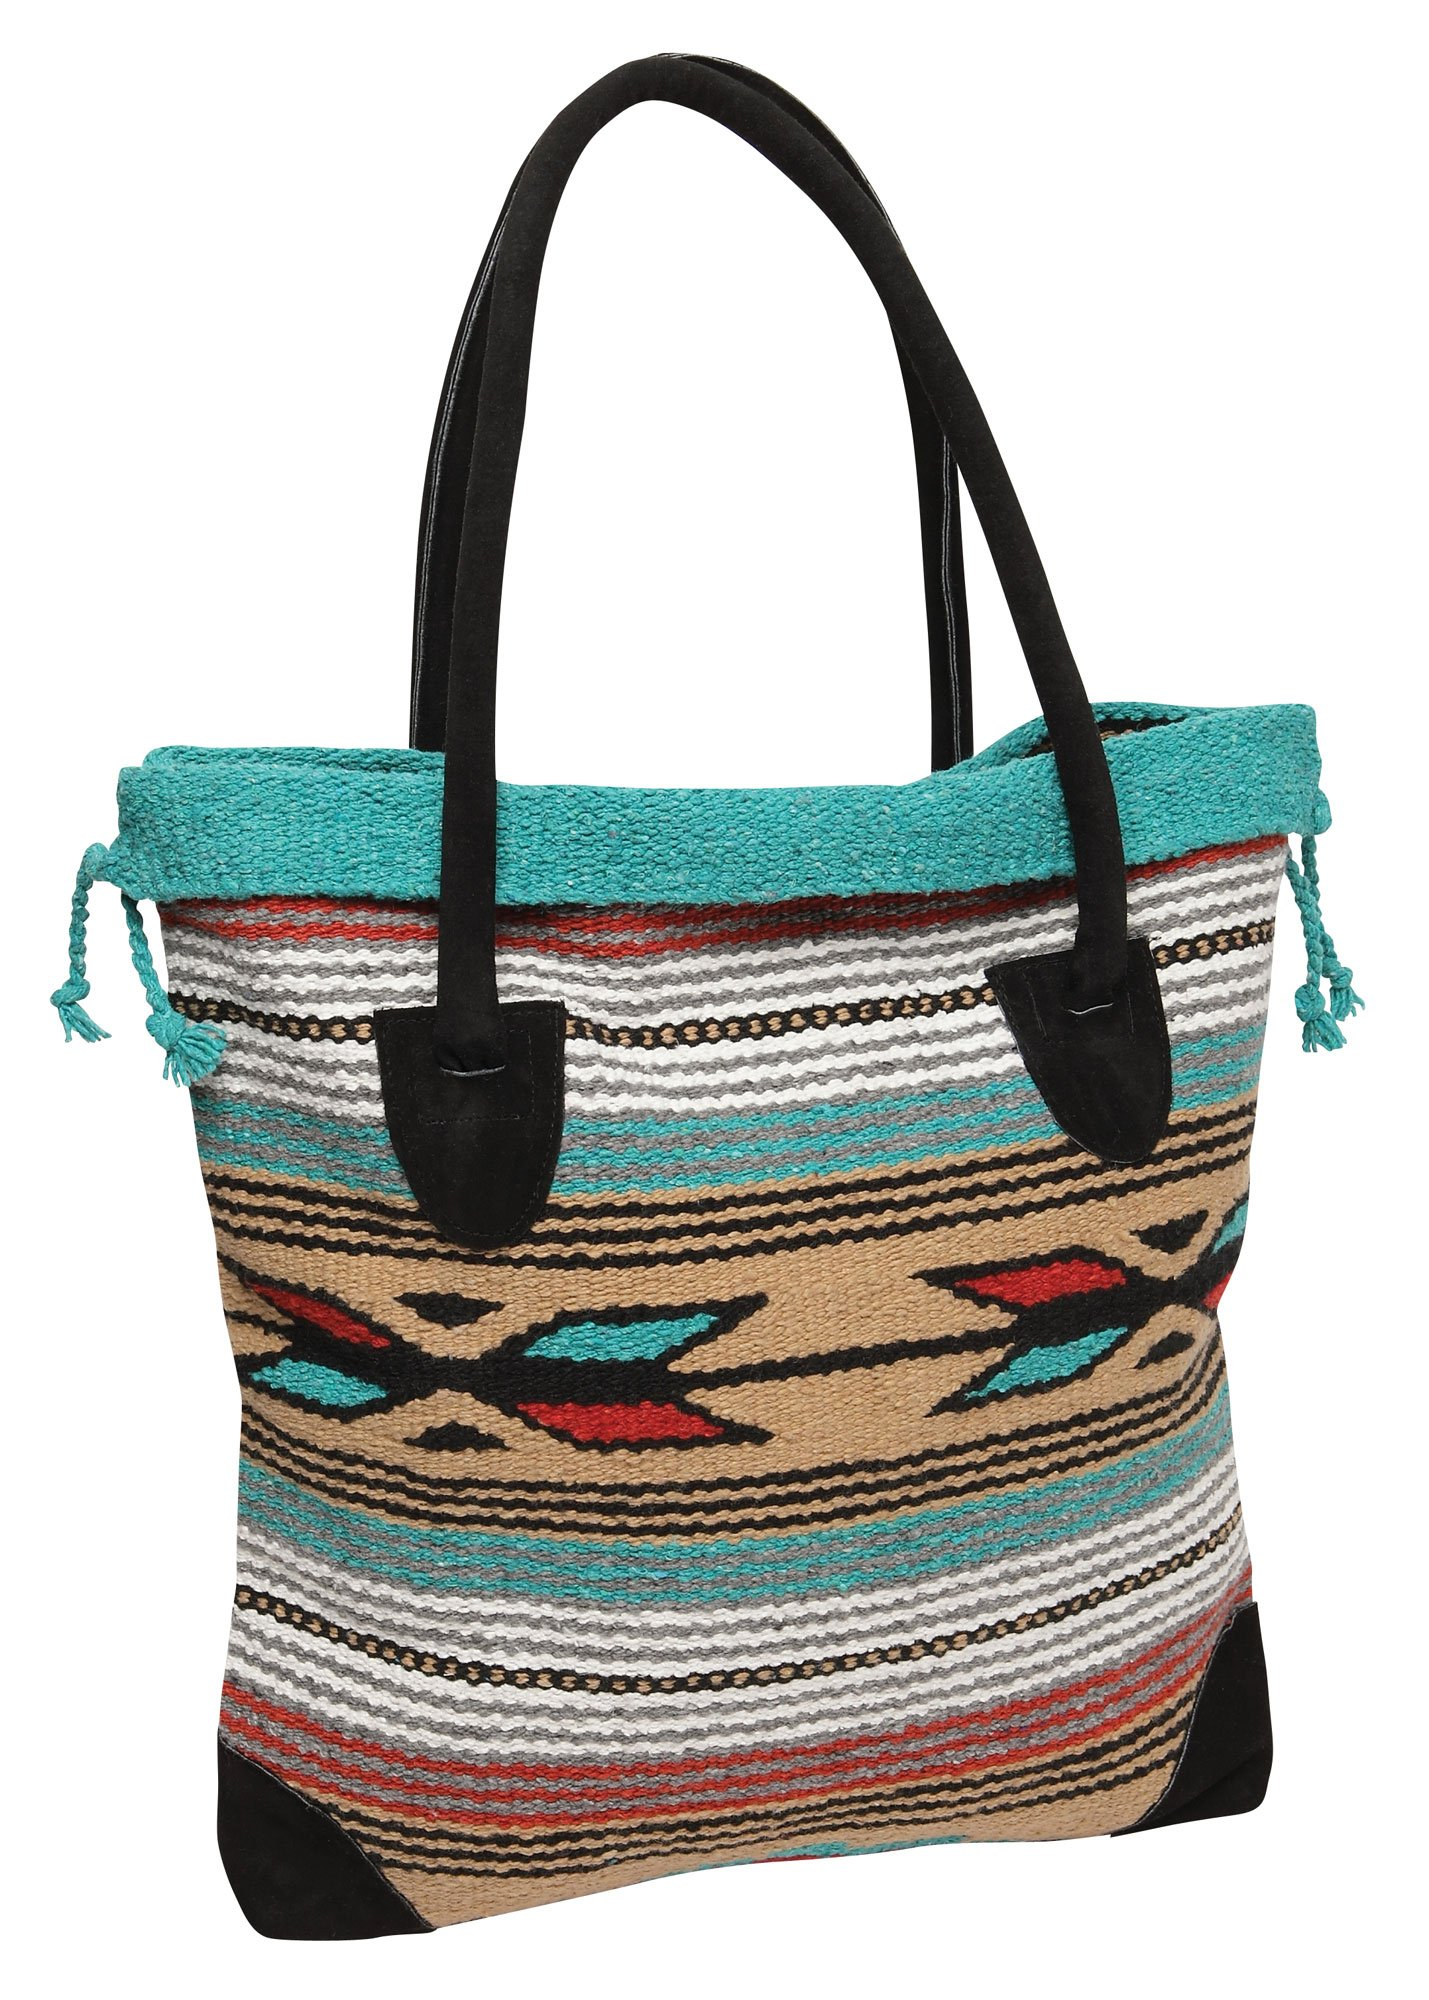 Southwest Native American and Mexican Style Tote Bags Feather Hawkeye L